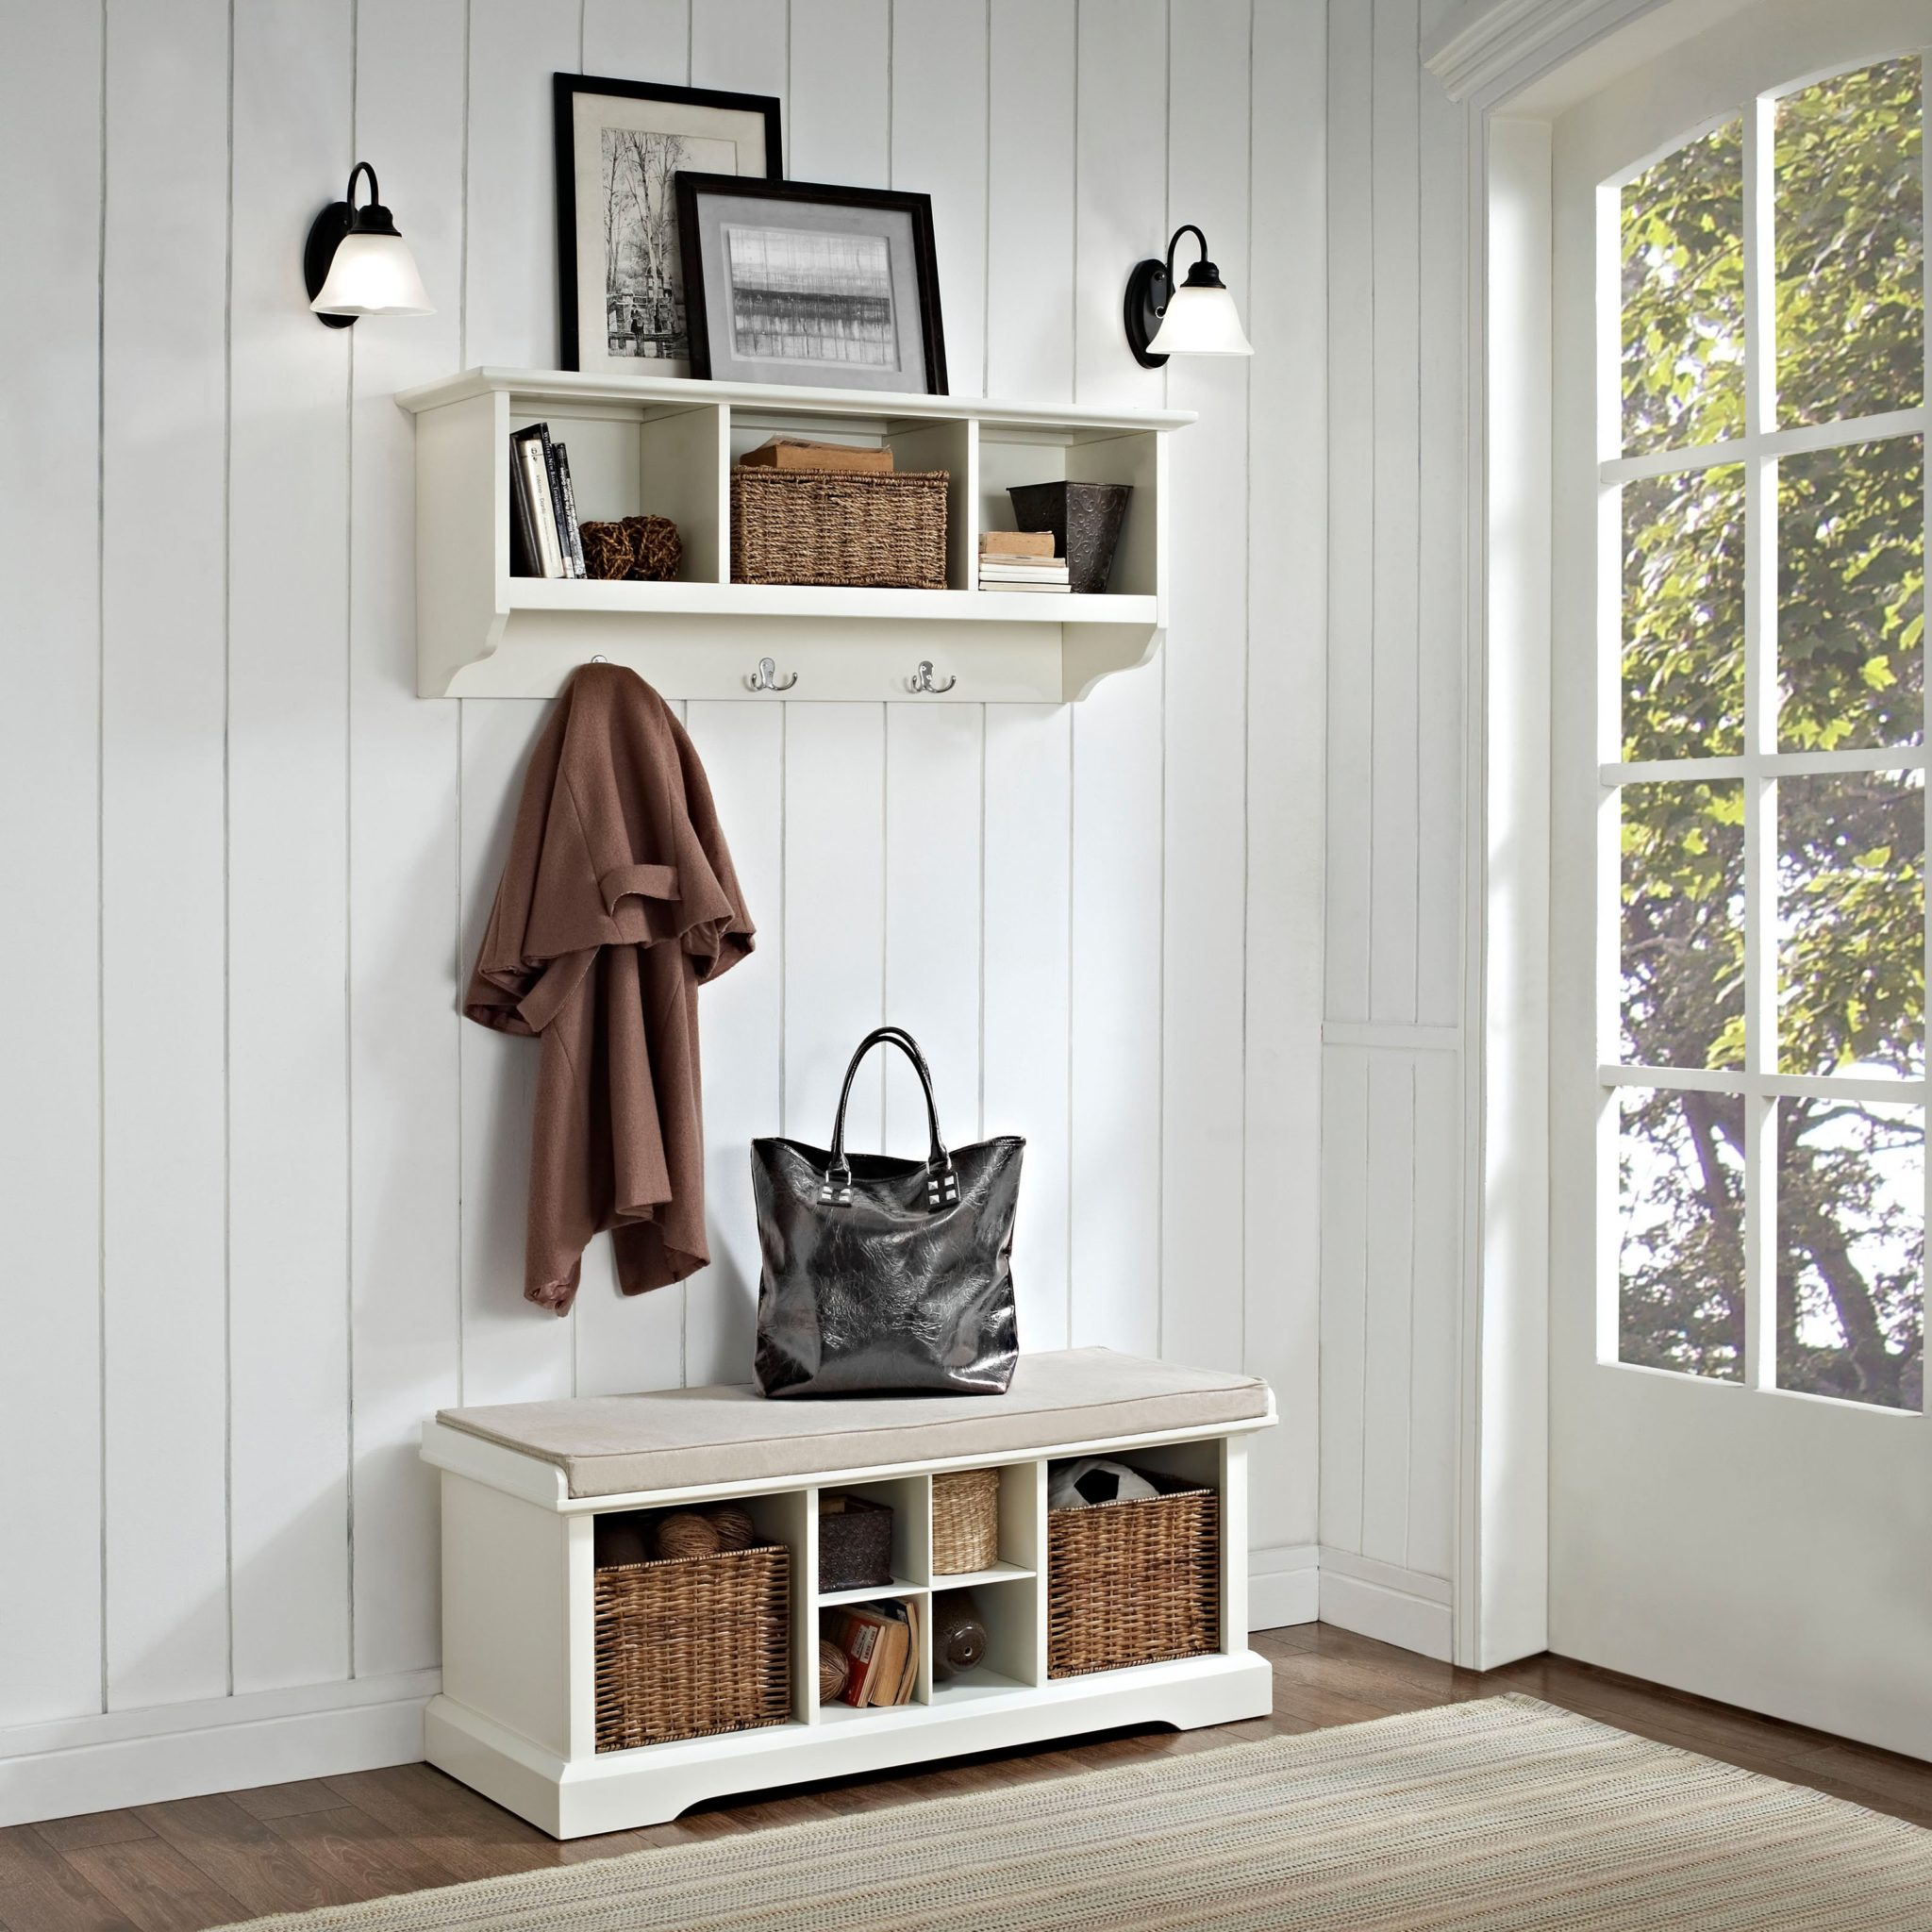 Utilizing-the-vertical-space-makes-for-a-small-and-cozy-entryway-